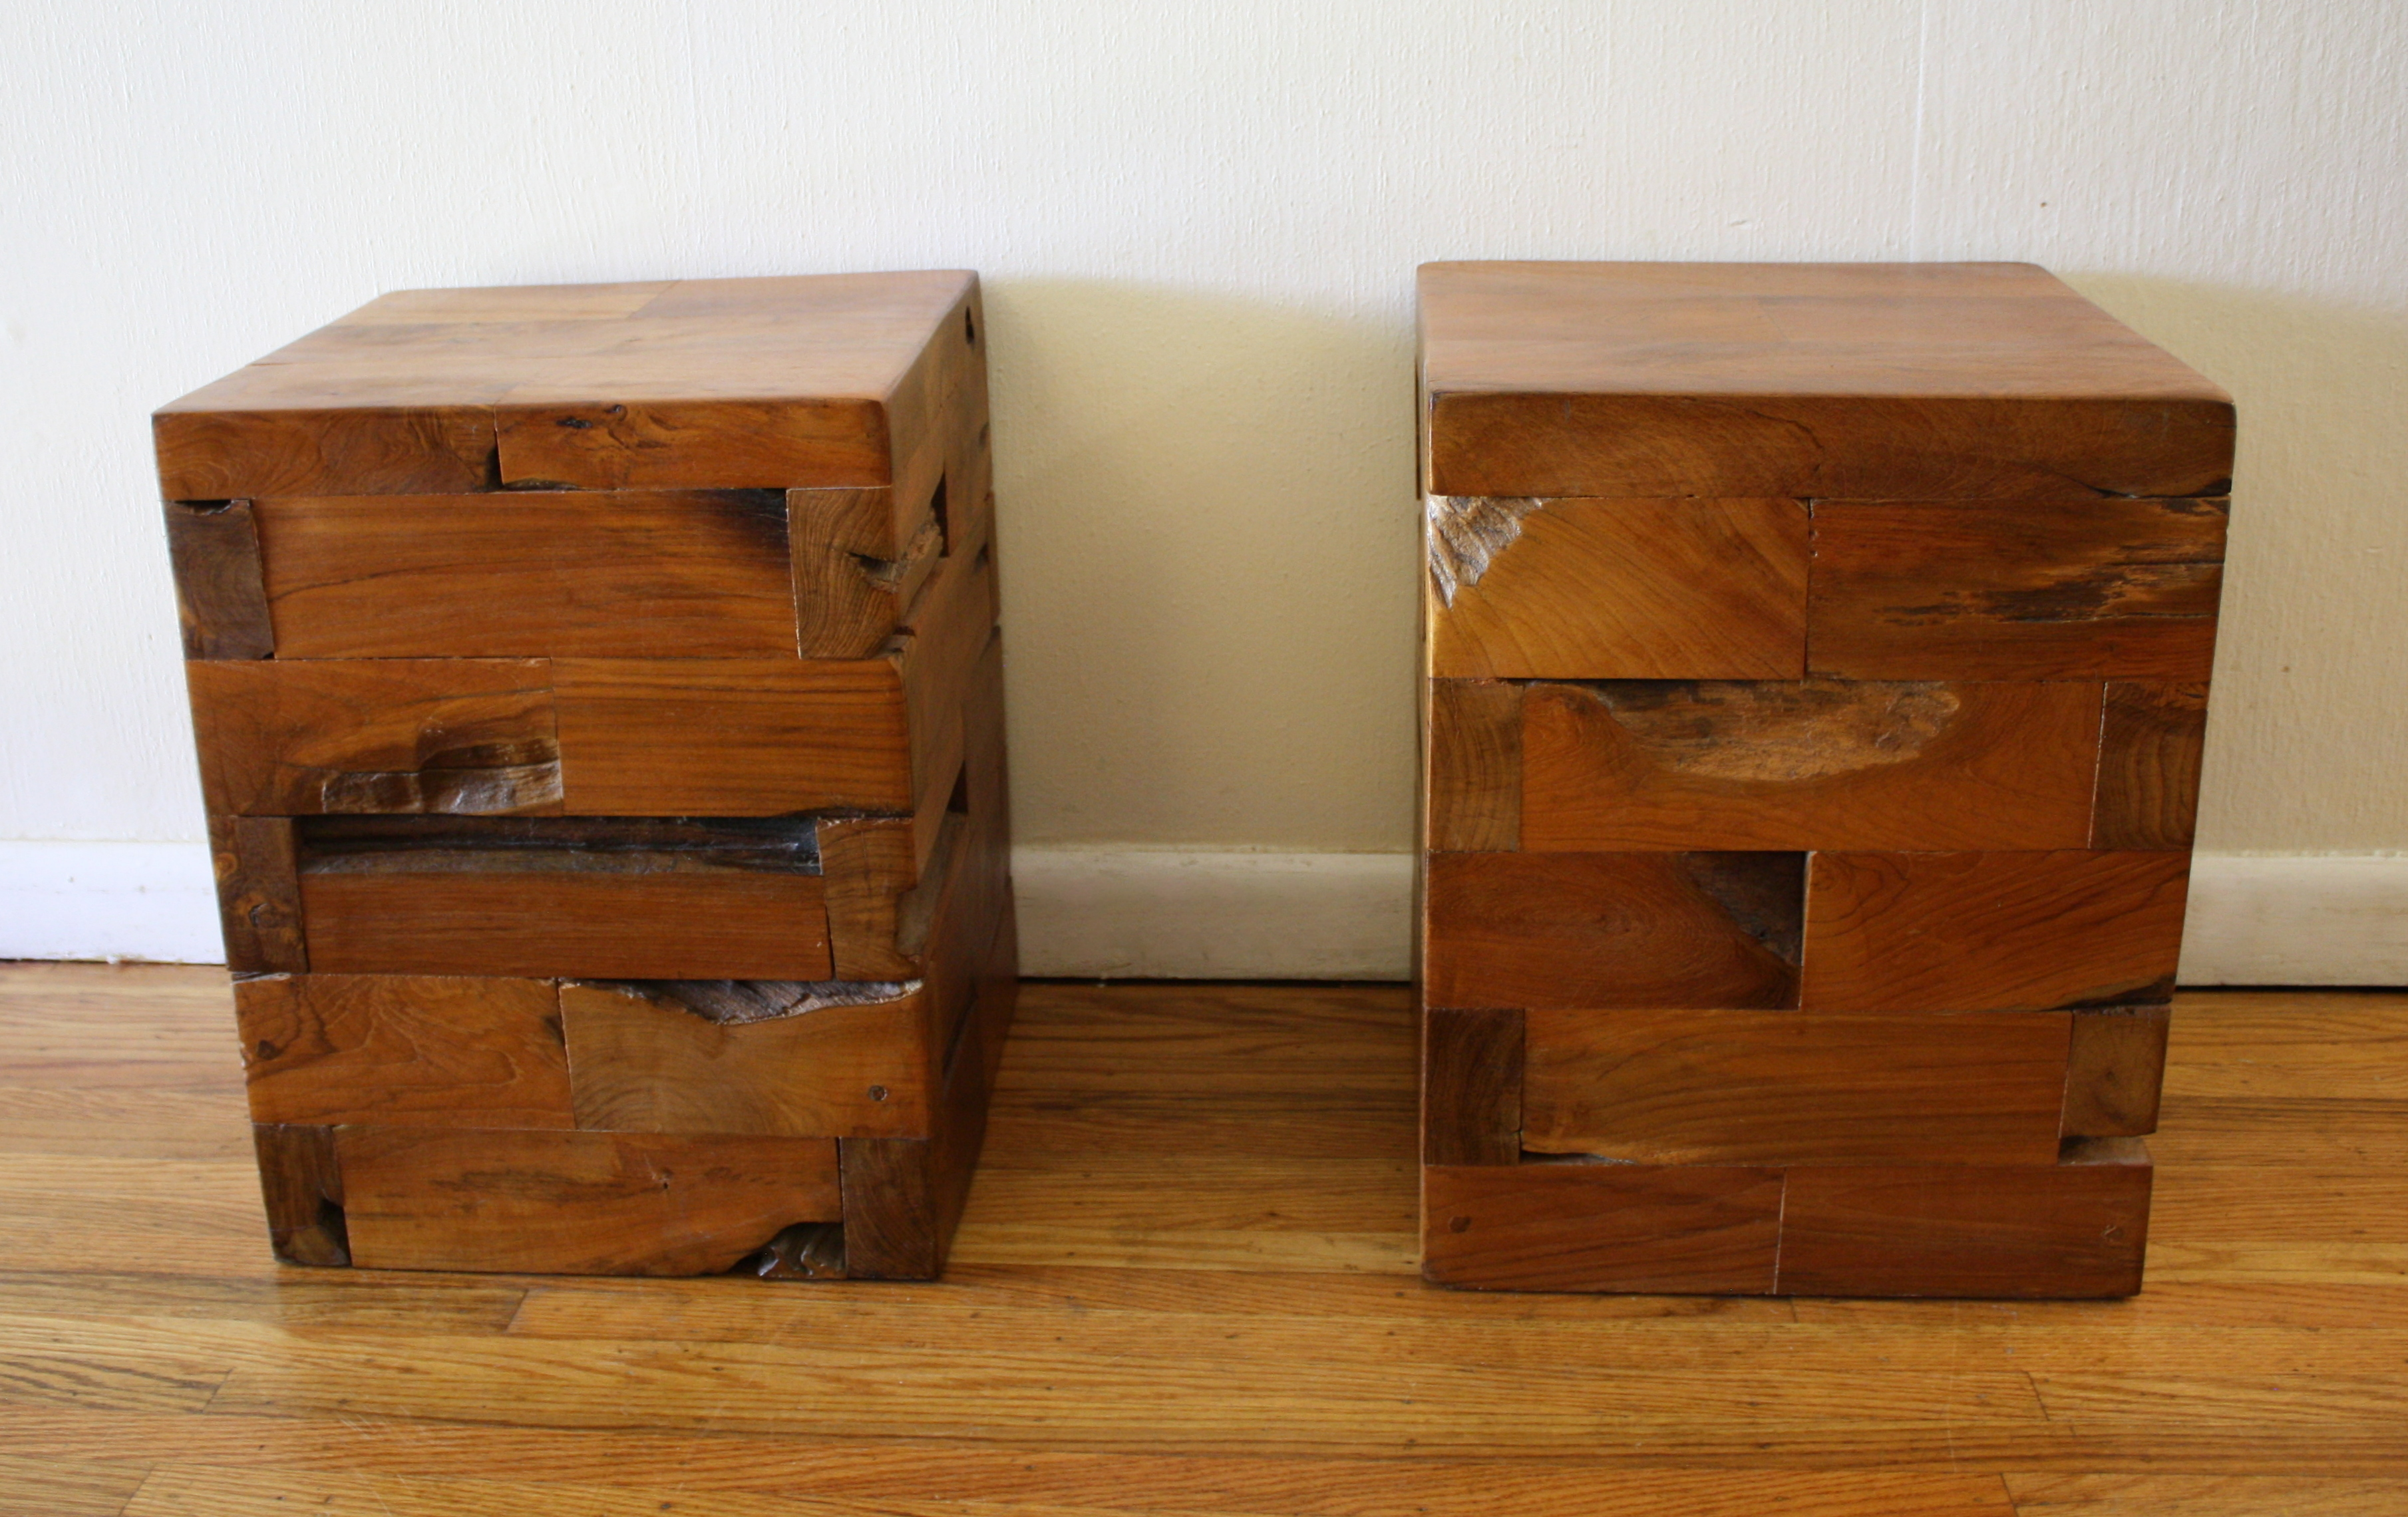 chairs stunning solid wood end tables landmark table accent industrial salvaged side ked vintage wide cube cherry with drawers block round origami geometric unfinished for black